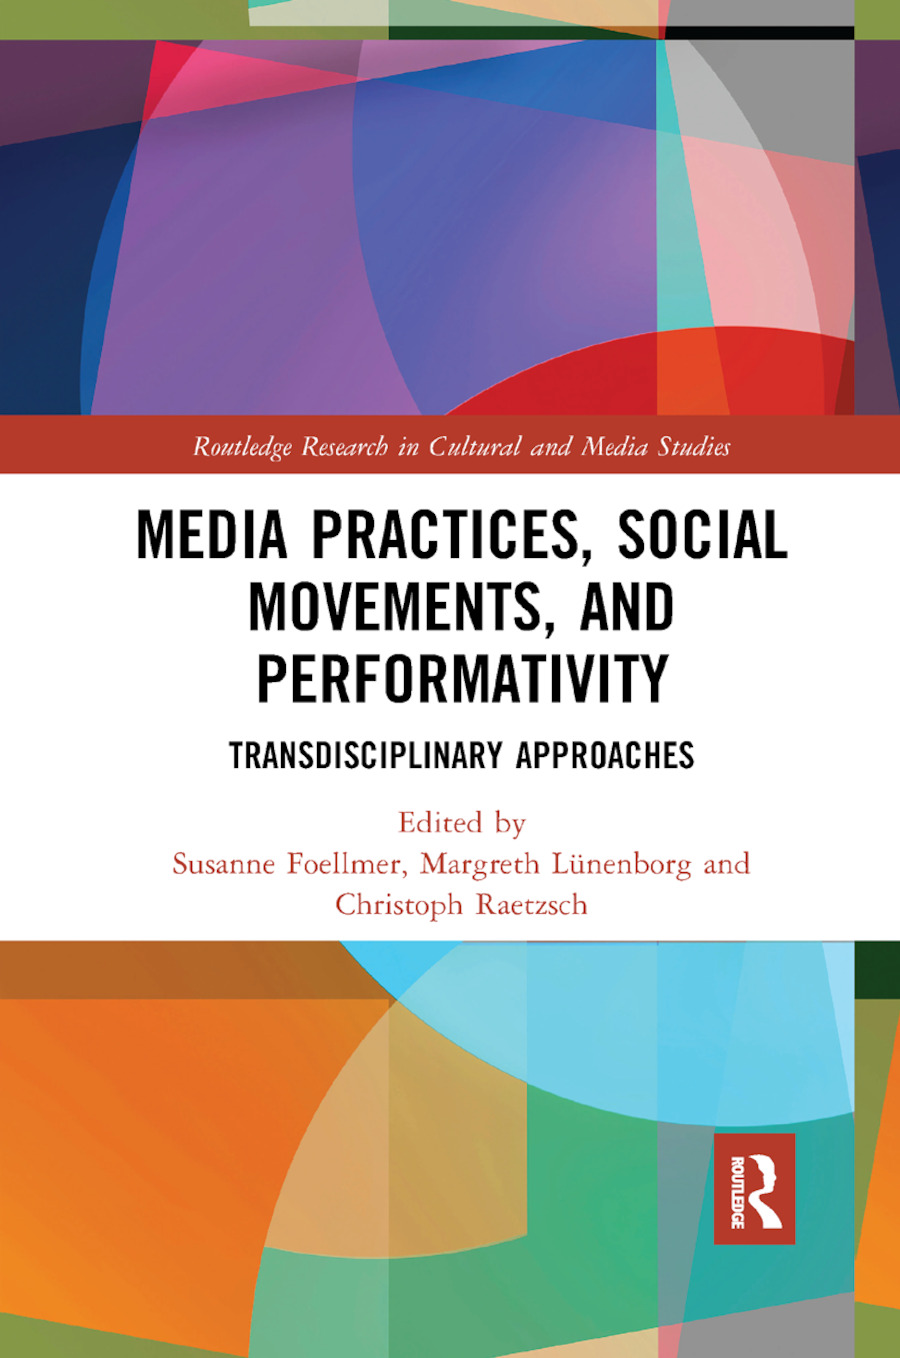 Media Practices, Social Movements, and Performativity: Transdisciplinary Approaches book cover